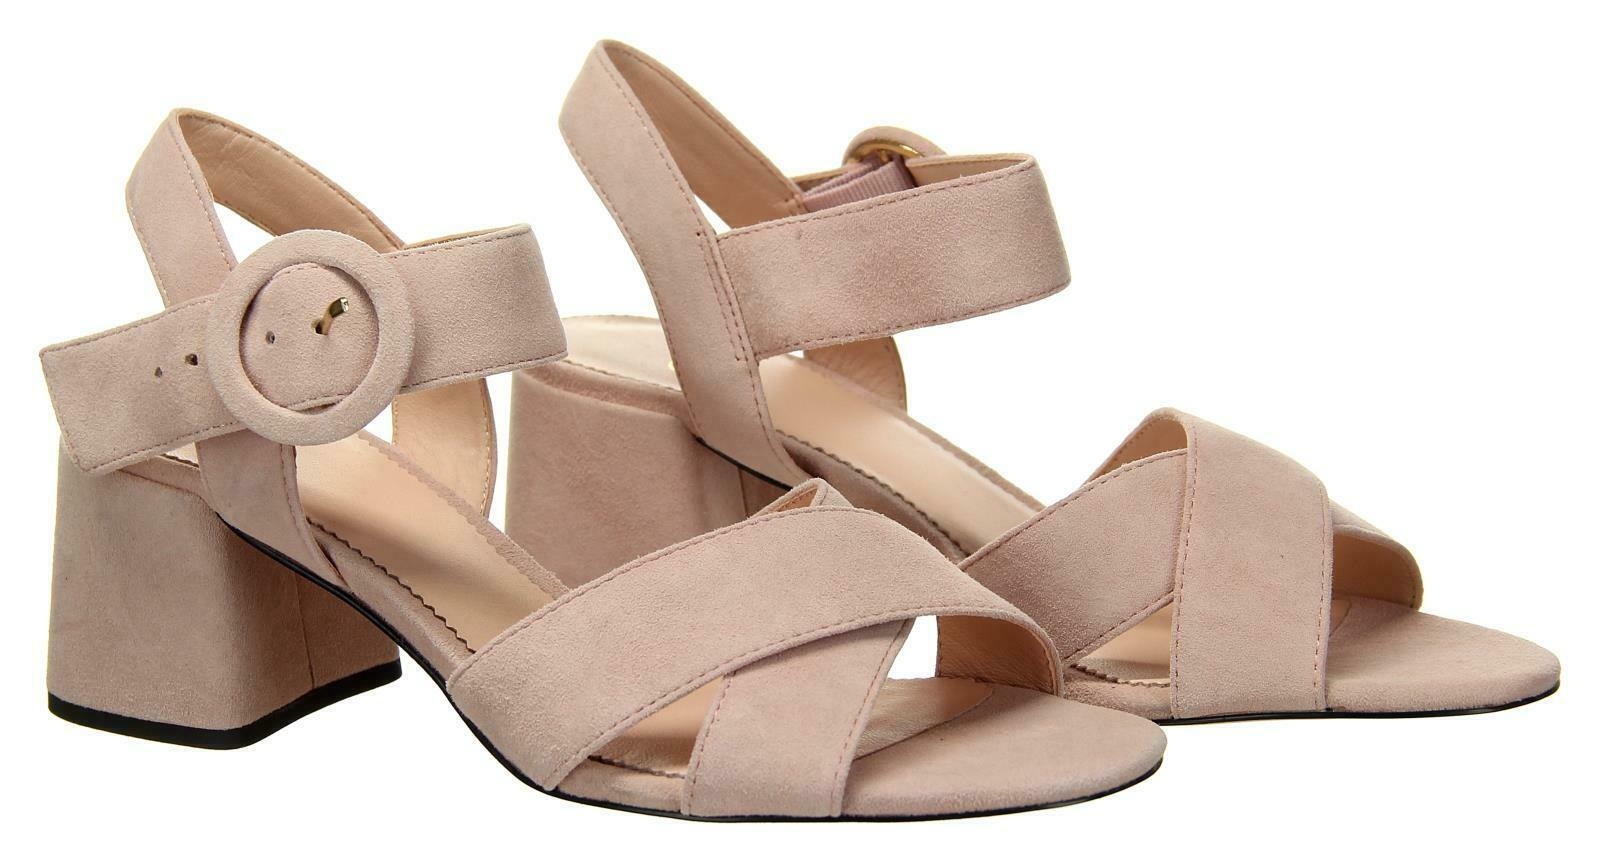 Primary image for J Crew Women's Suede Penny Sandals Heels Pumps Open Toe 7.5 Subtle Pink J8229